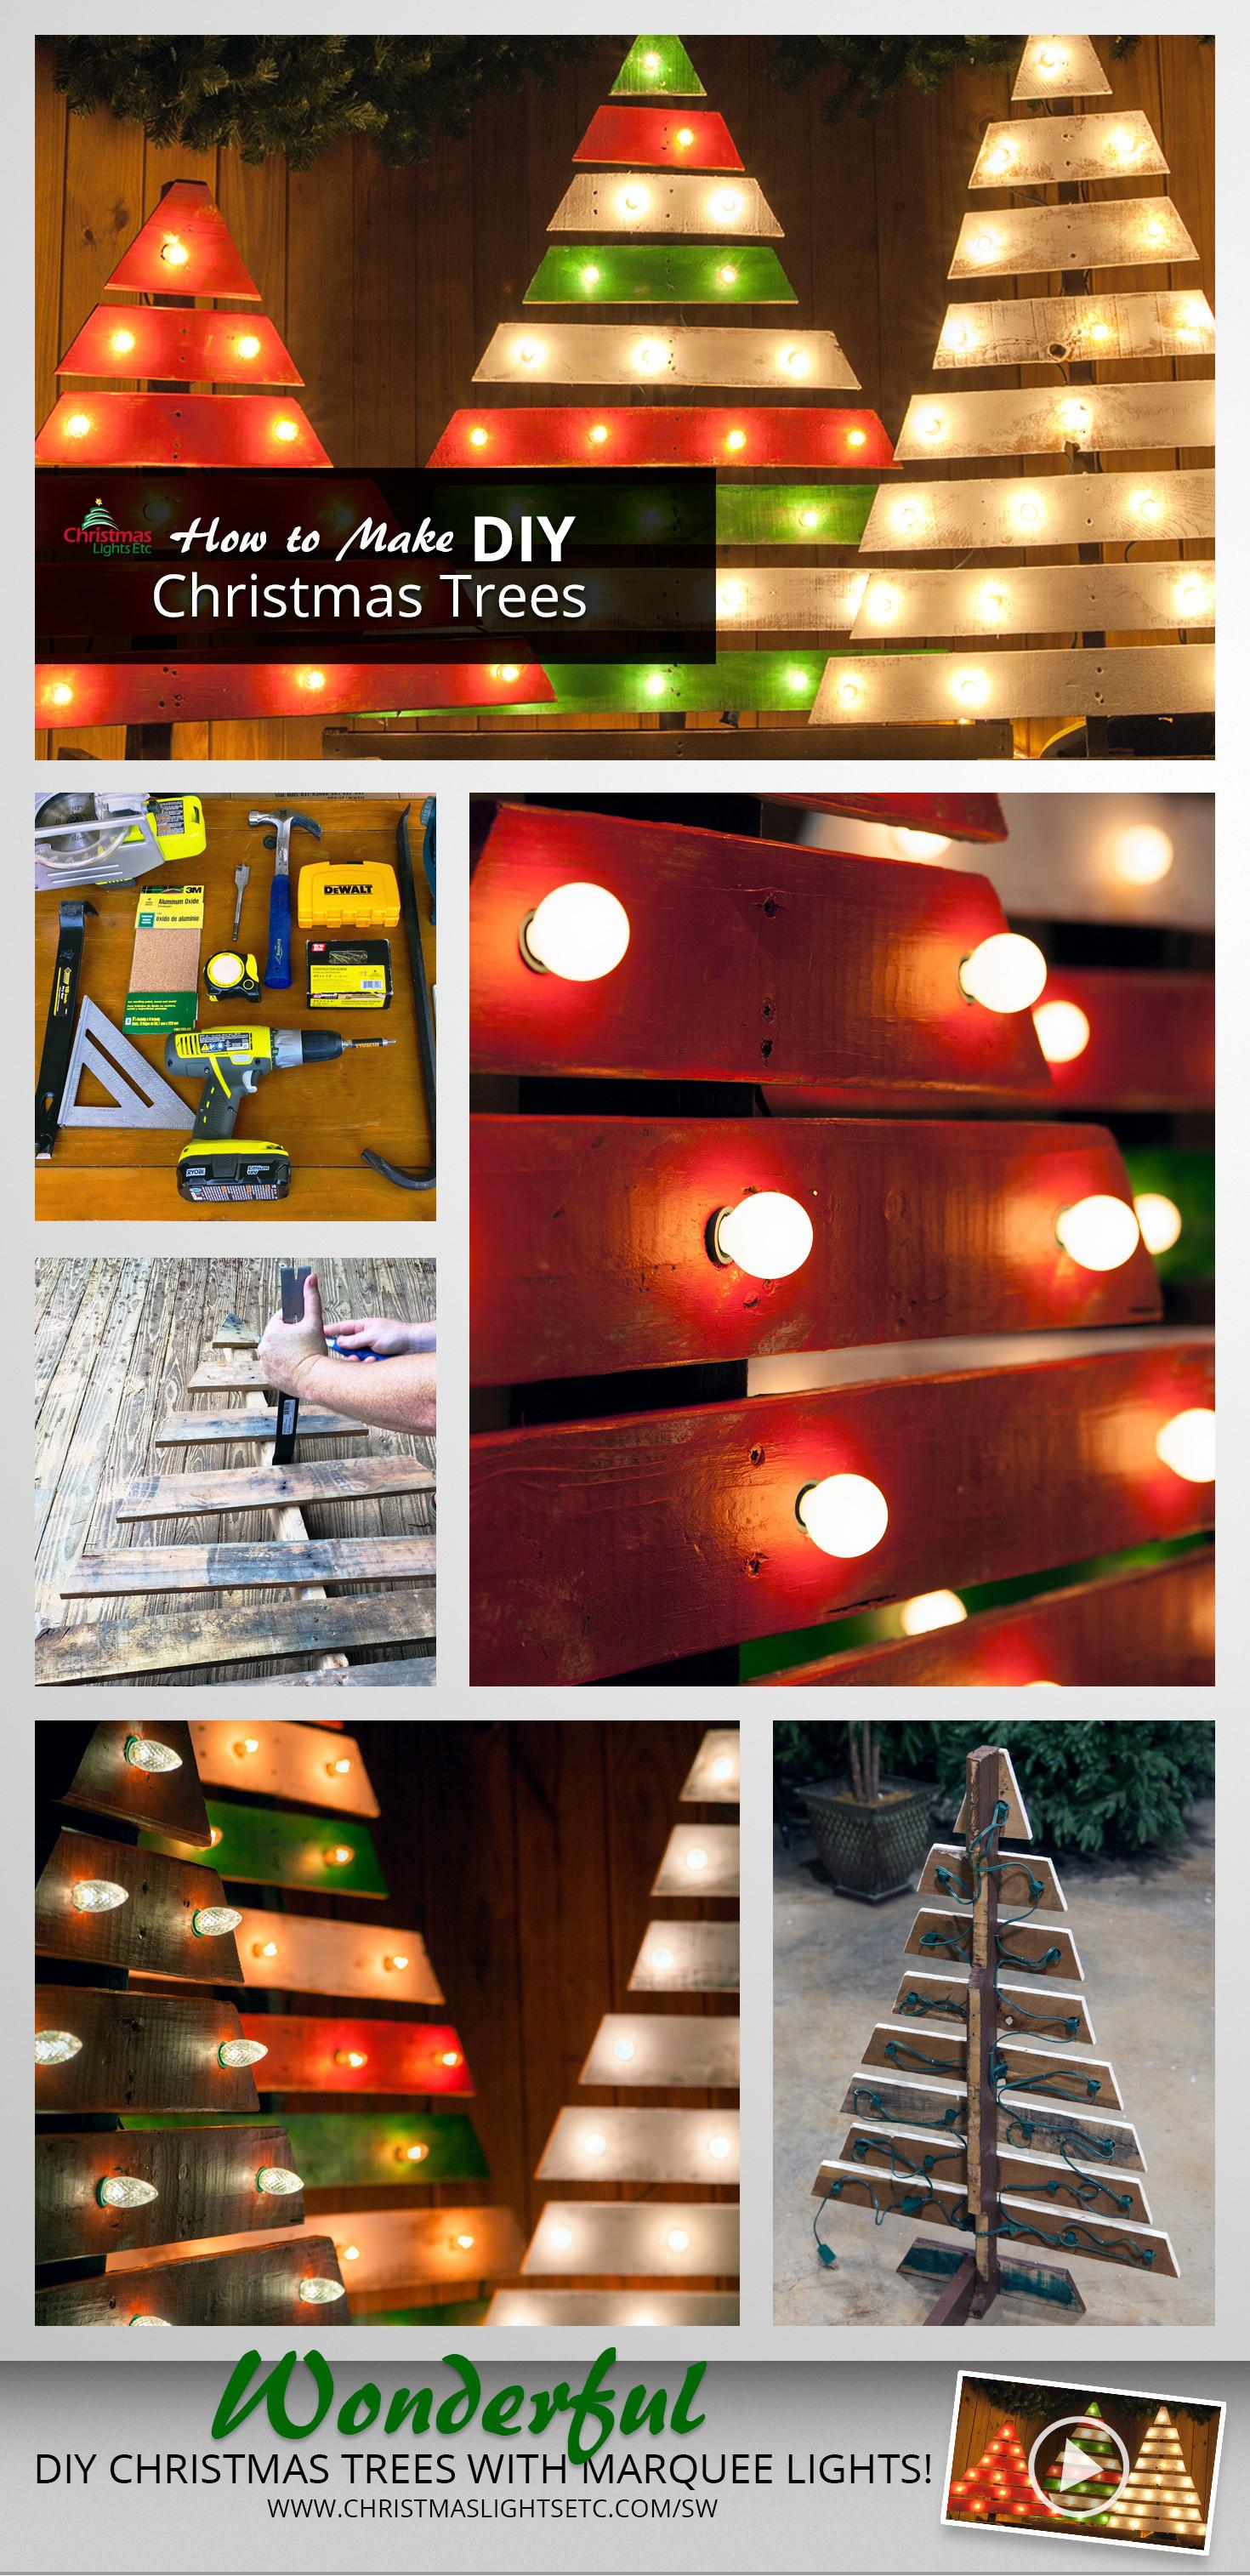 Diy Christmas Trees Marquee Lights